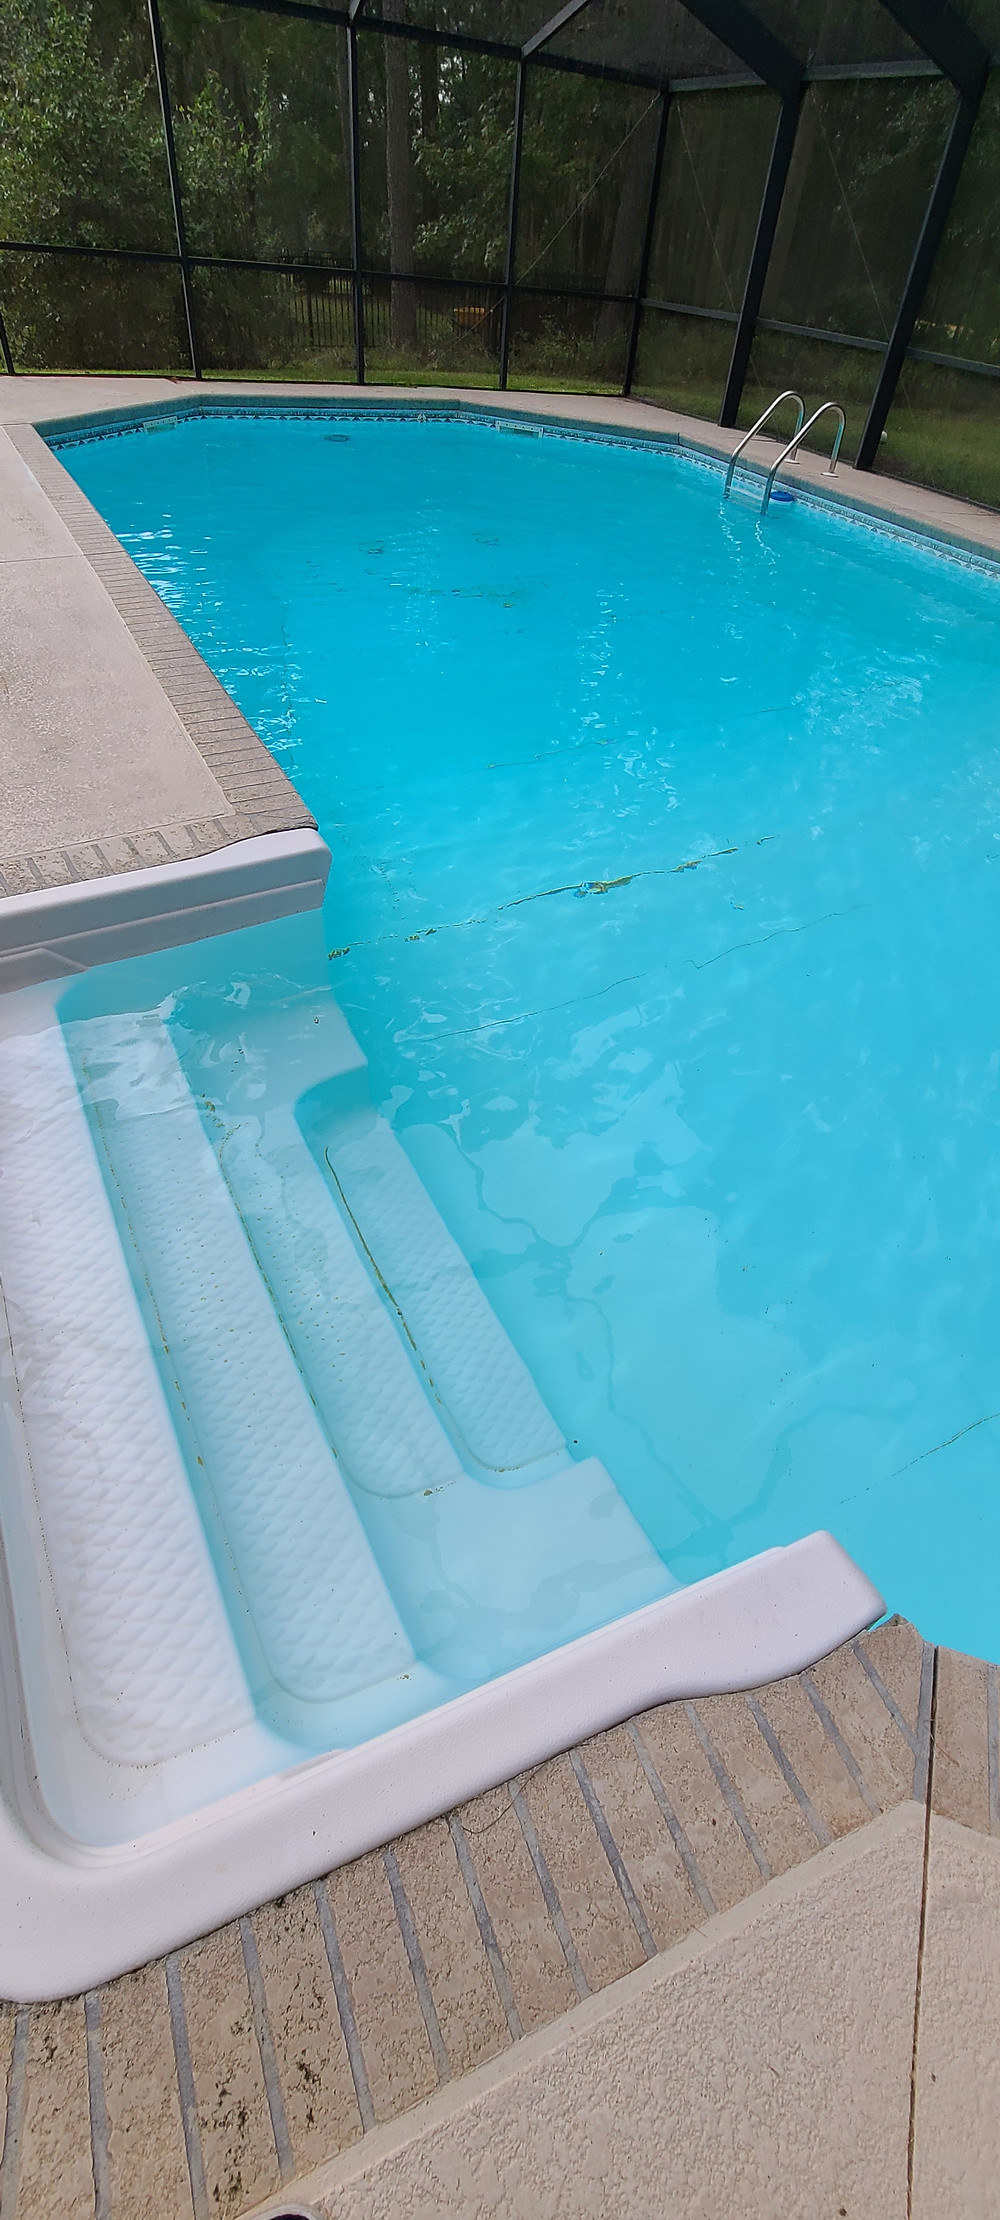 If algae keeps coming back after proper treatment, you may need to clean or refresh your pools filtration system.